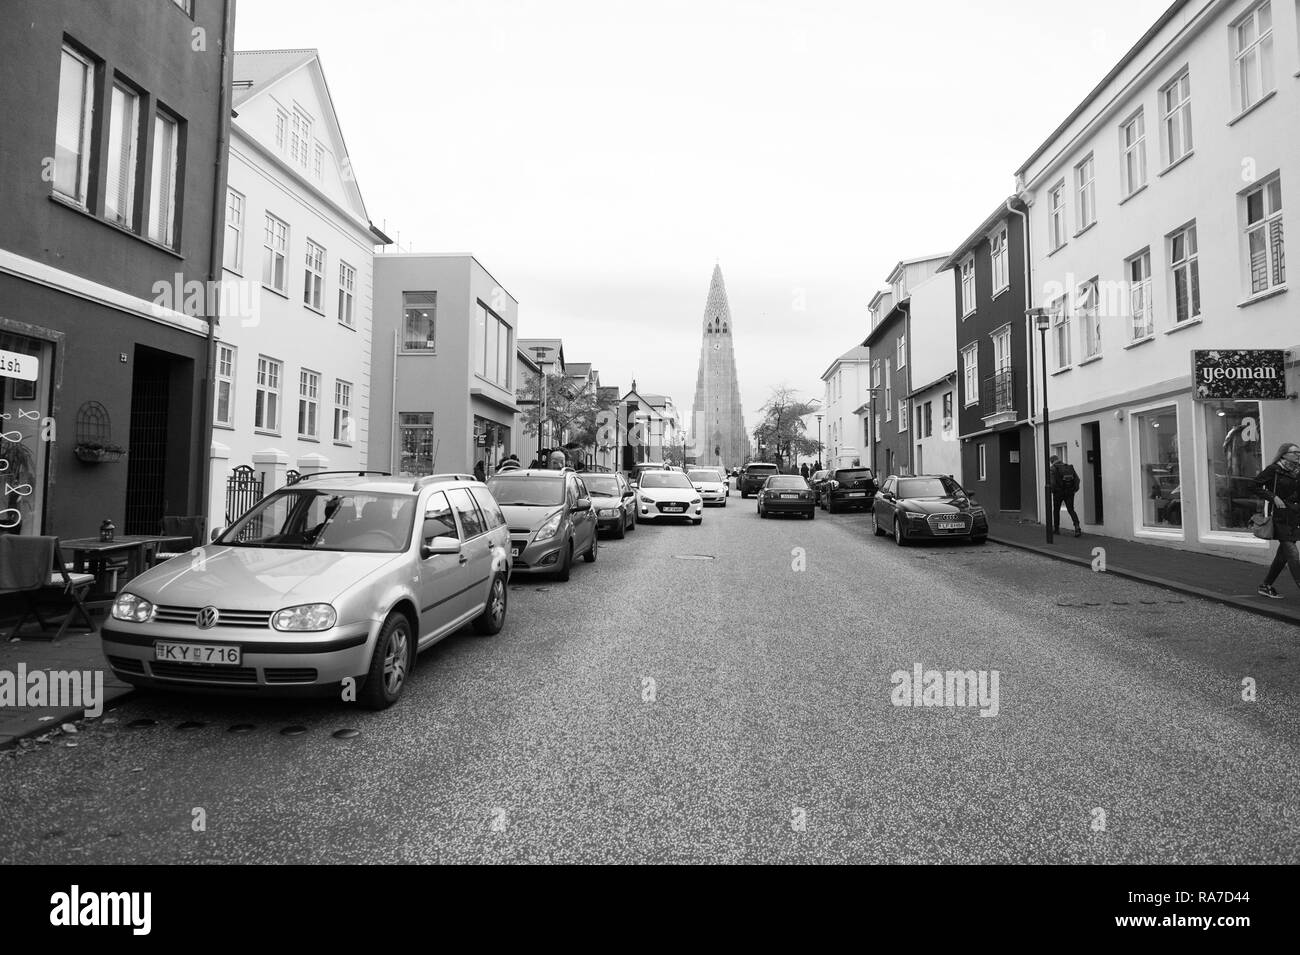 Reykjavik, Iceland - October 12, 2017: hallgrimskirkja church view on travel road. Hallgrimskirkja architecture. Lutheran church. Travel guide. Connecting people to Jesus and one another. - Stock Image